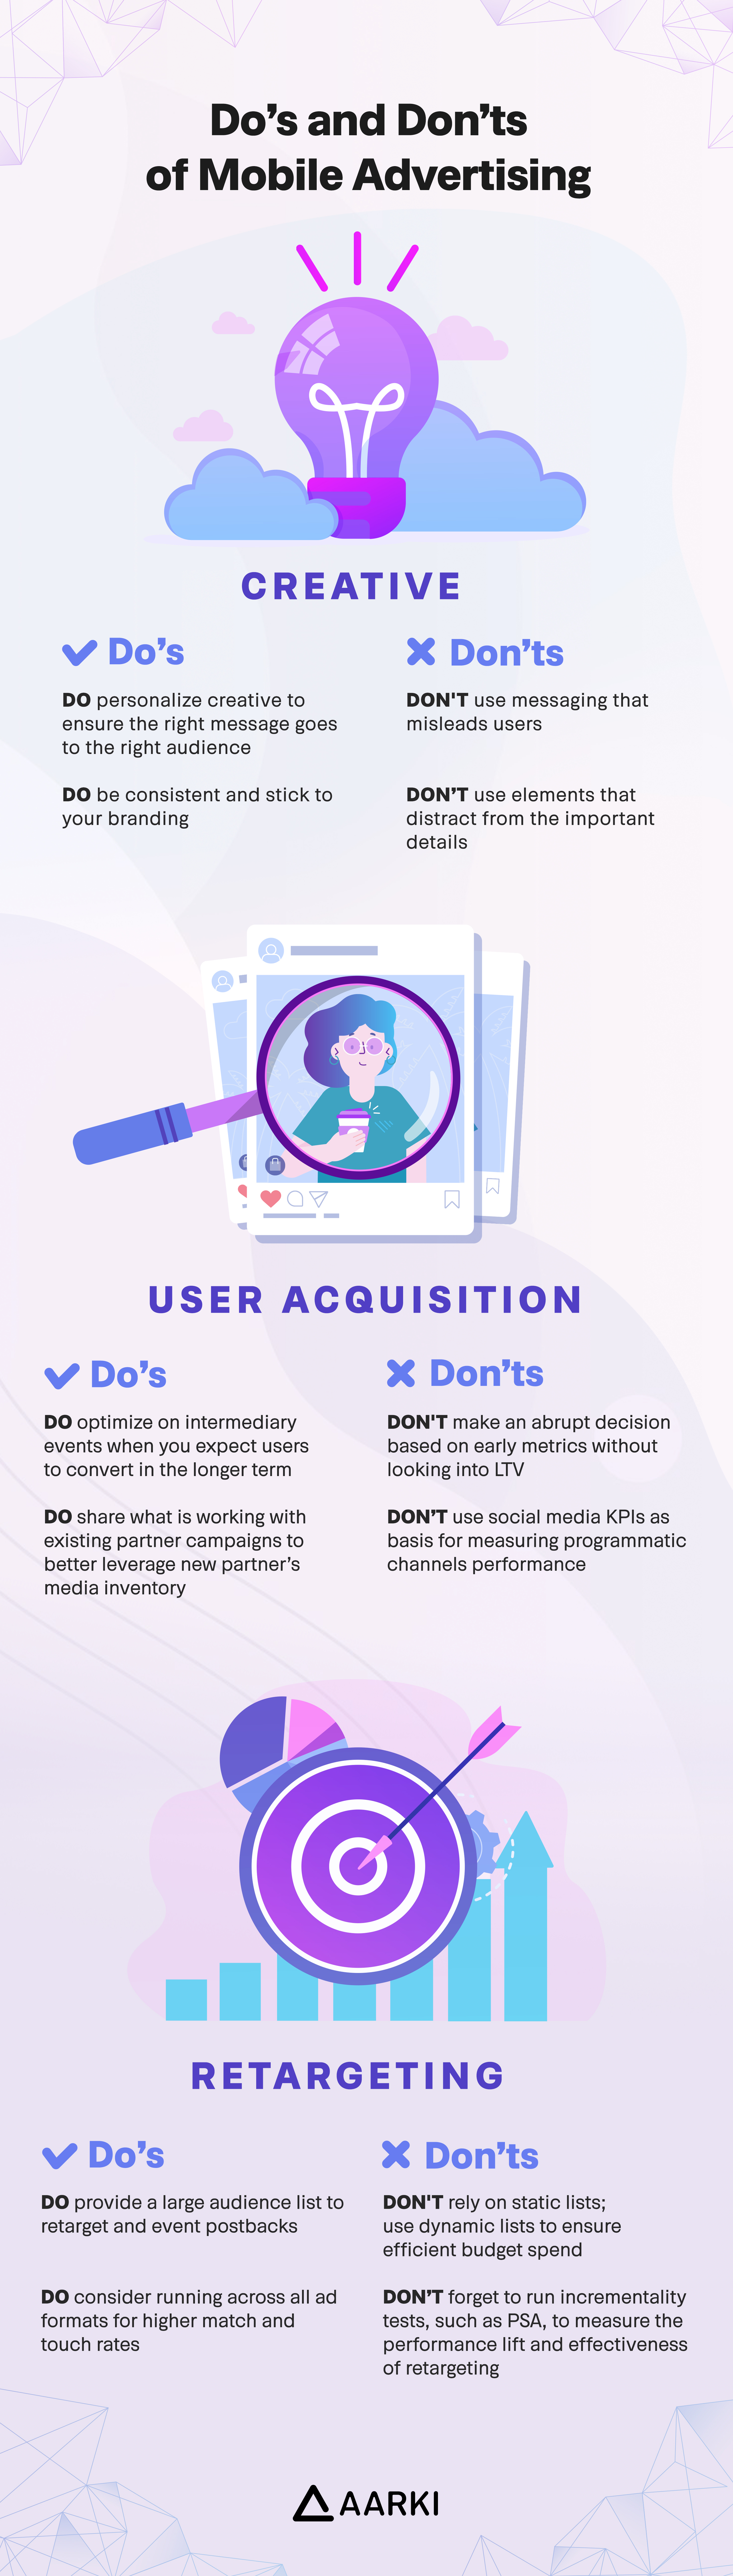 The do's and don'ts of mobile advertising infographic tackling creative, user acquisition, and retargeting